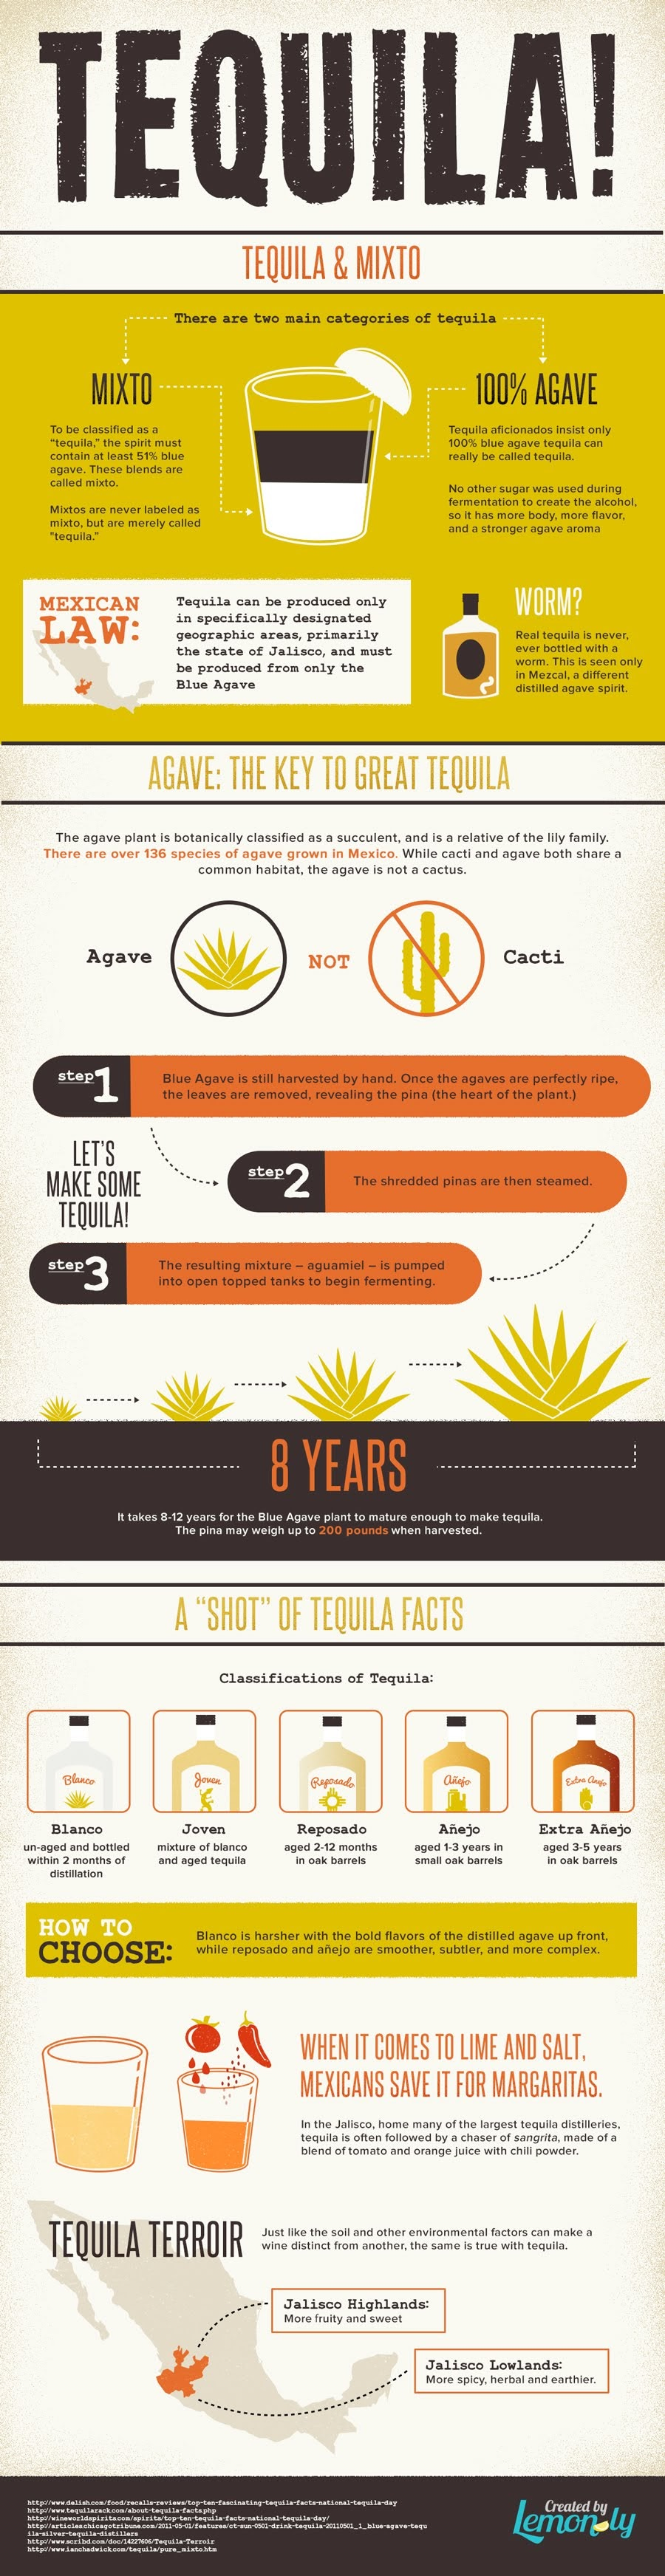 Tequila!: All About Tequila #infographic